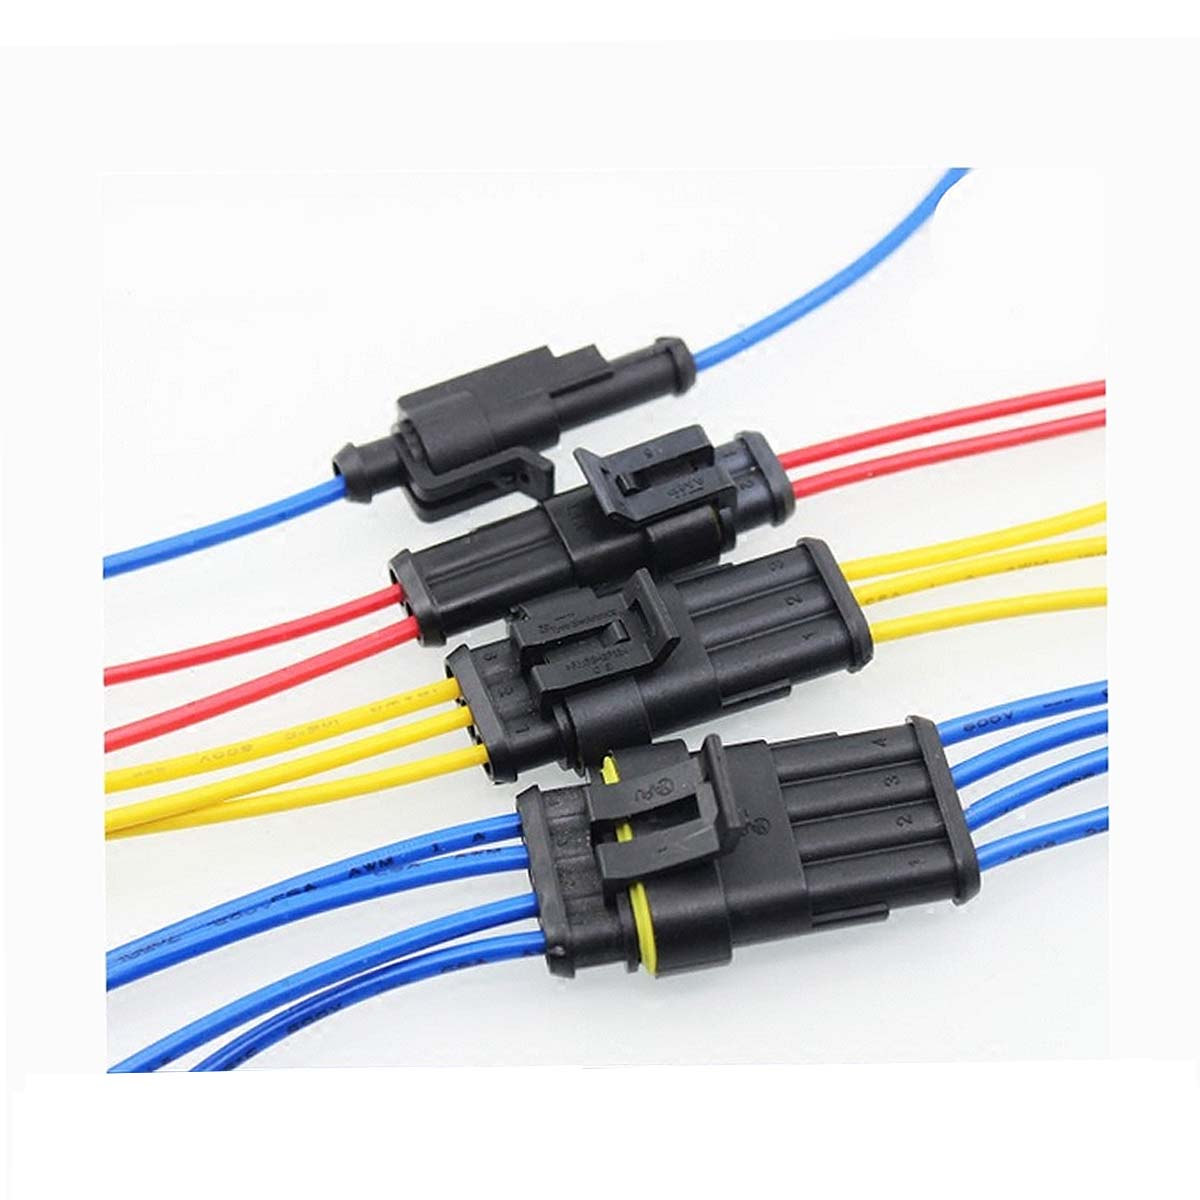 hight resolution of 15 kits 2 3 4 pins way sealed waterproof electrical wire connector plug motorcycle car auto